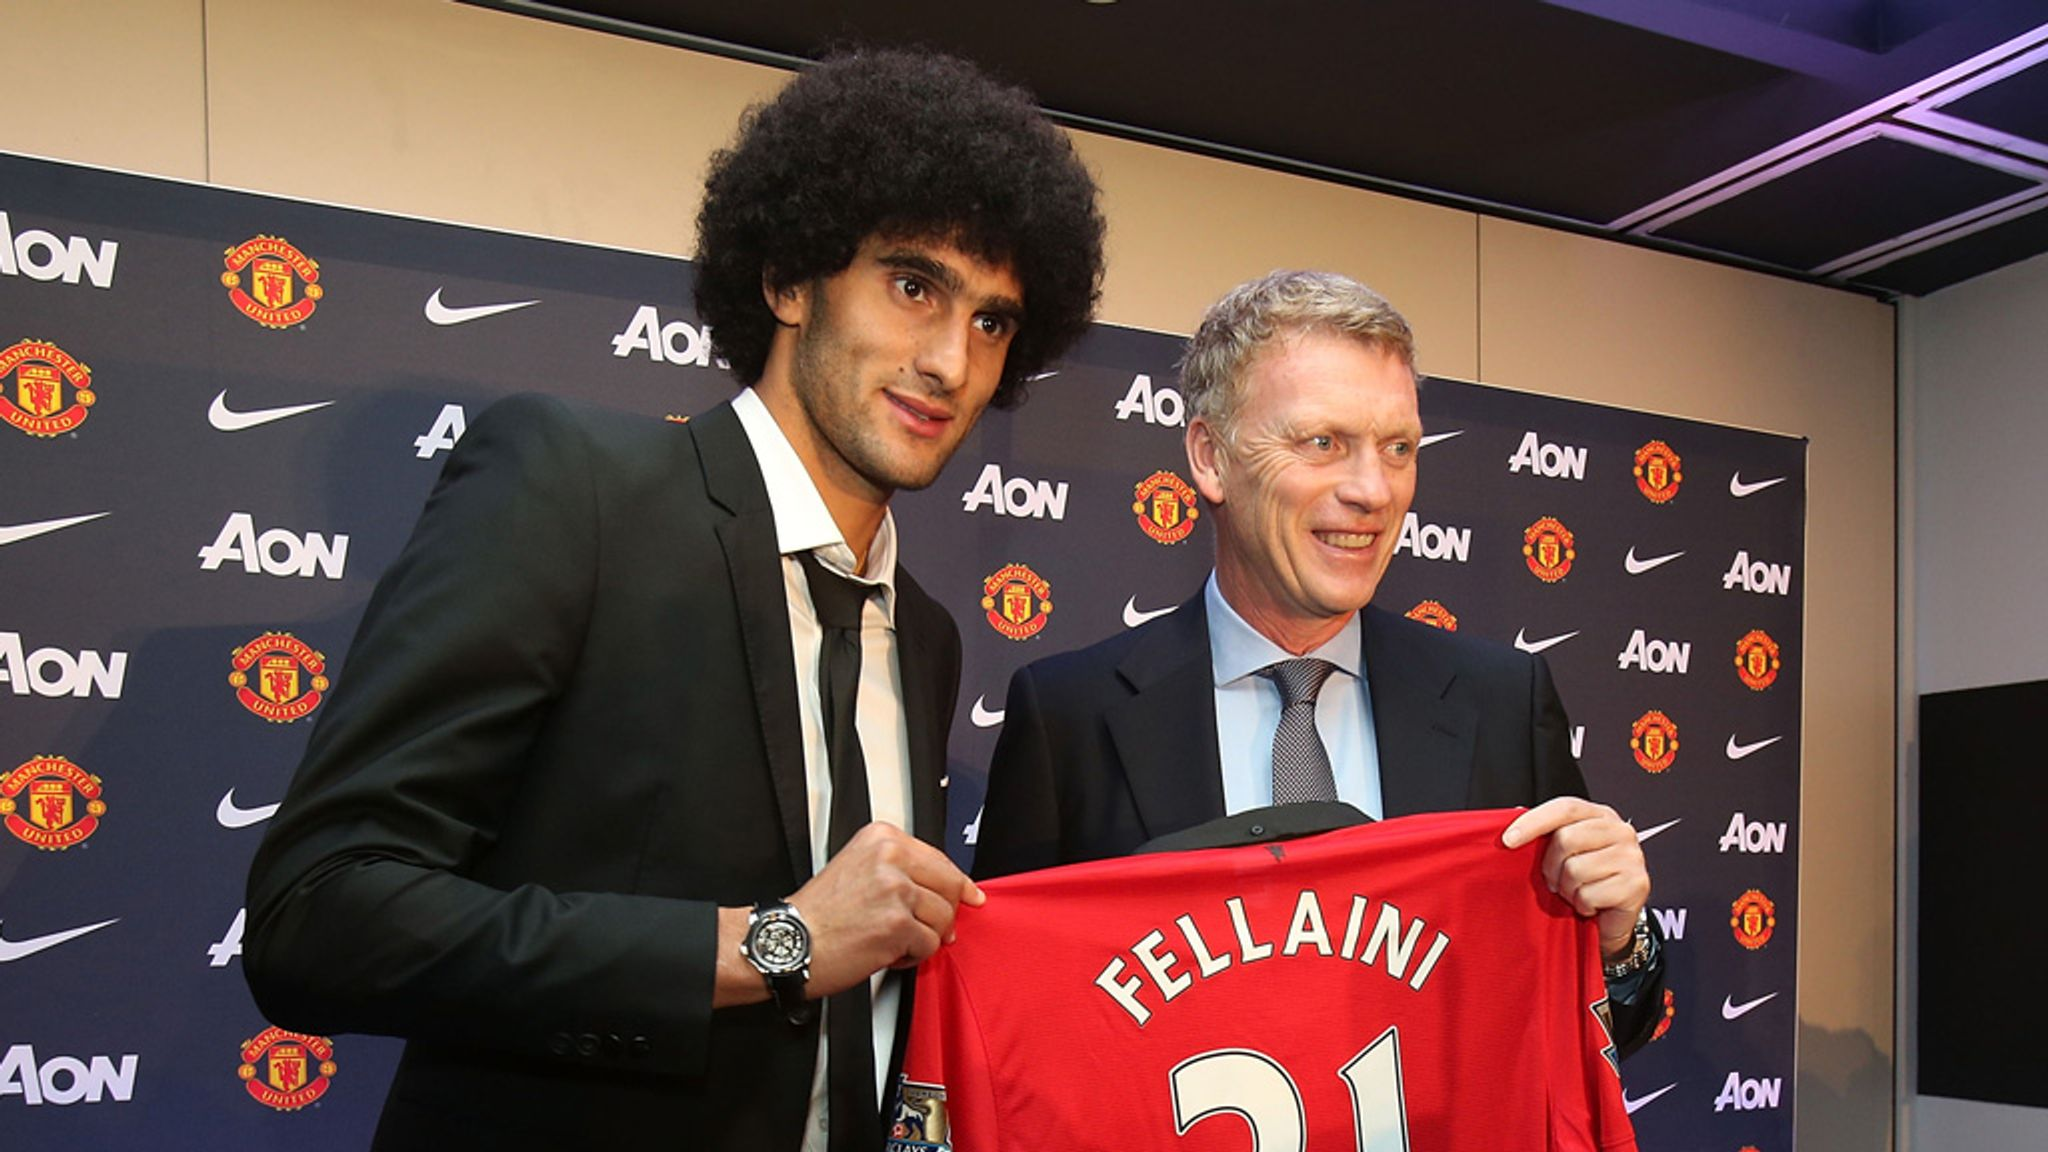 Man United too quick to sack Jose Mourinho, says Marouane Fellaini